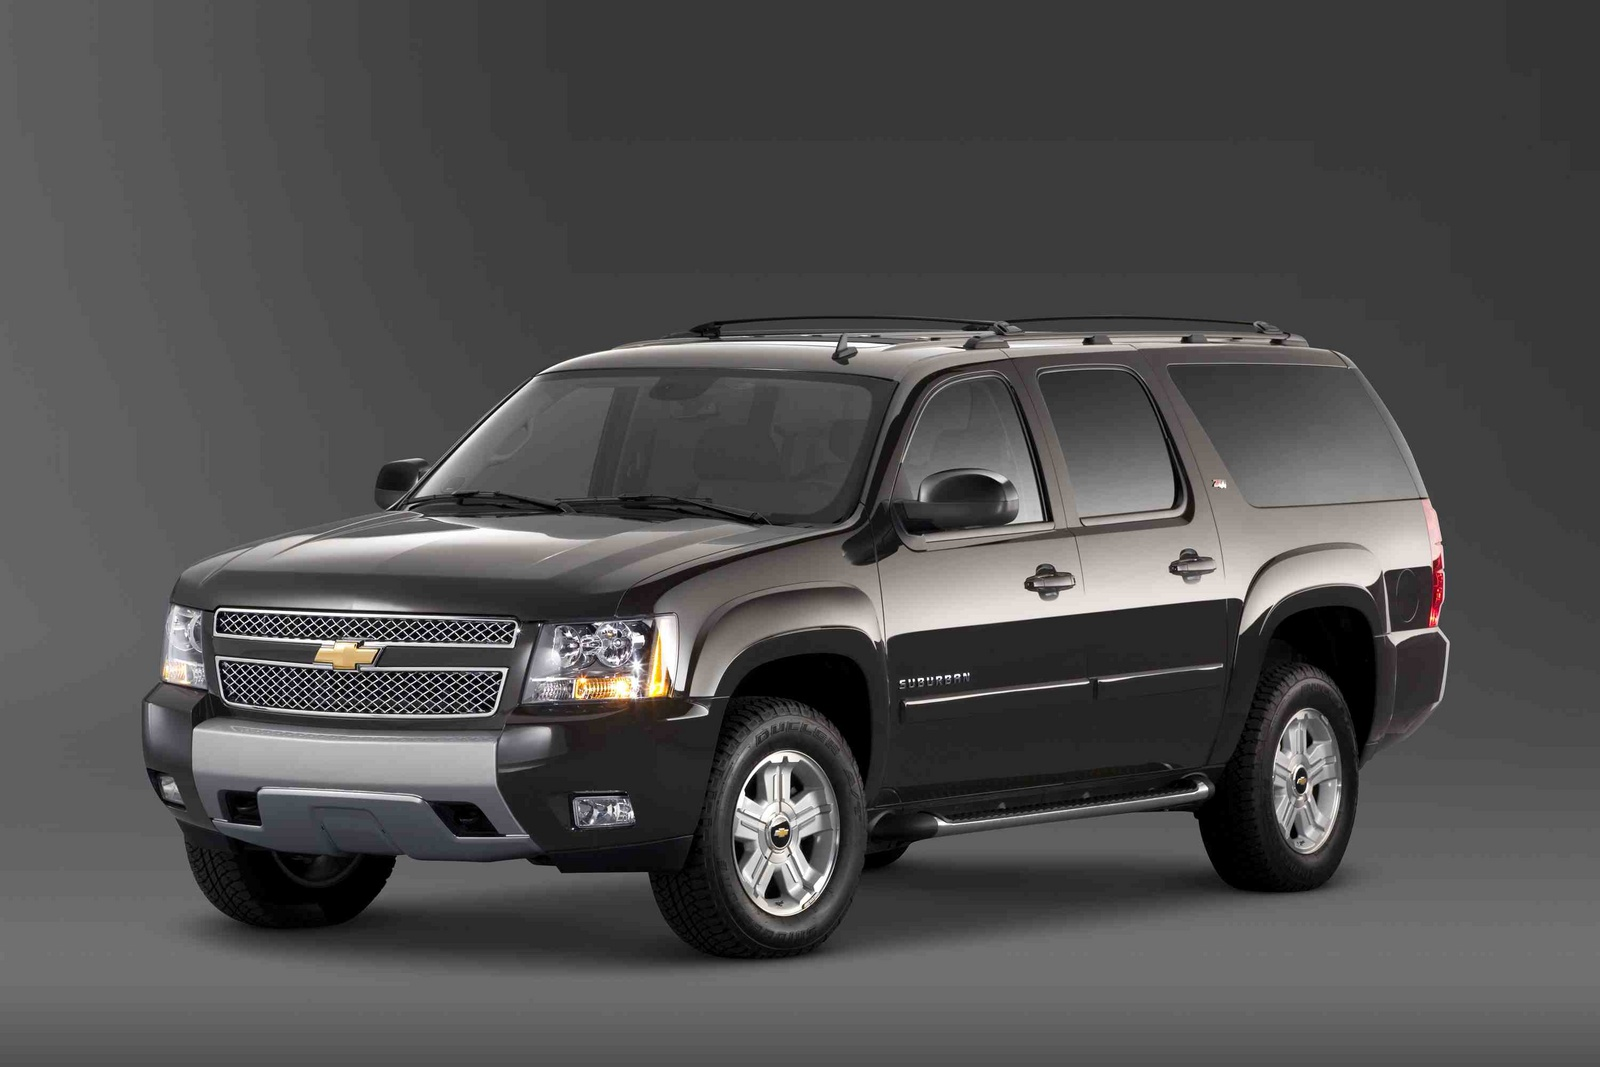 2011 chevrolet suburban review cargurus. Black Bedroom Furniture Sets. Home Design Ideas